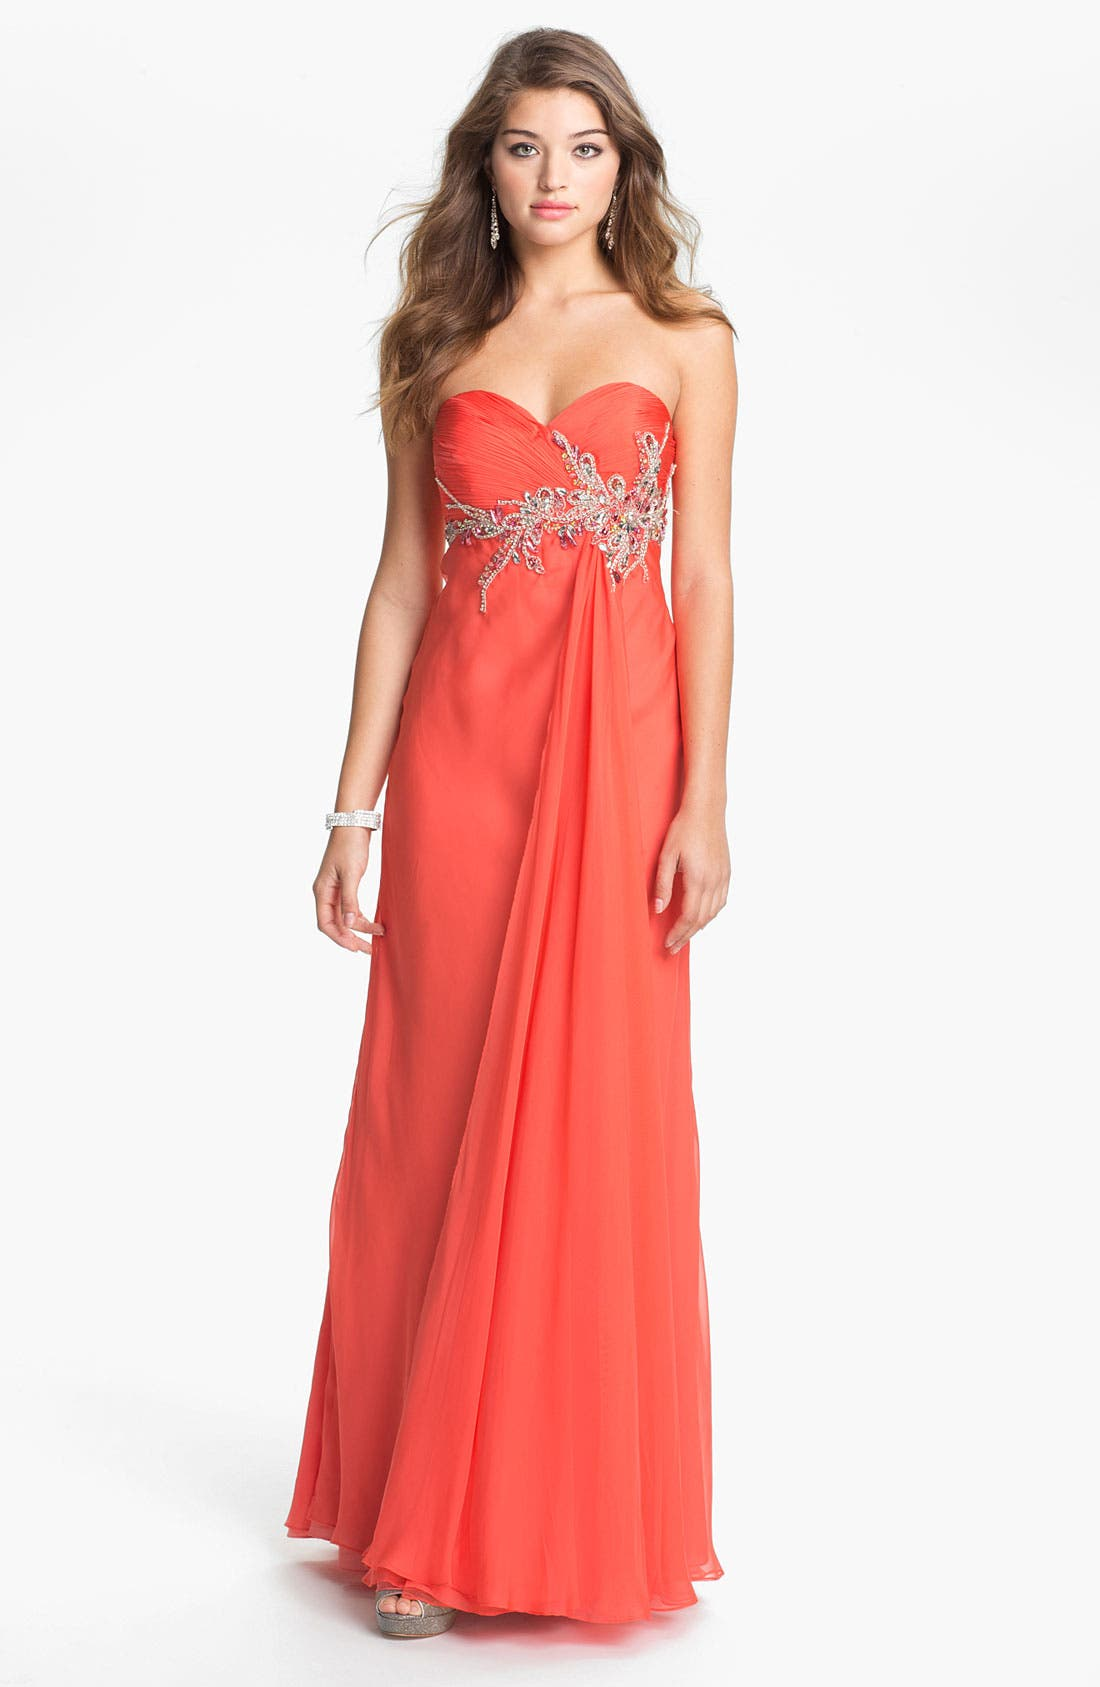 Alternate Image 1 Selected - Faviana Embellished Strapless Chiffon Gown (Online Only)